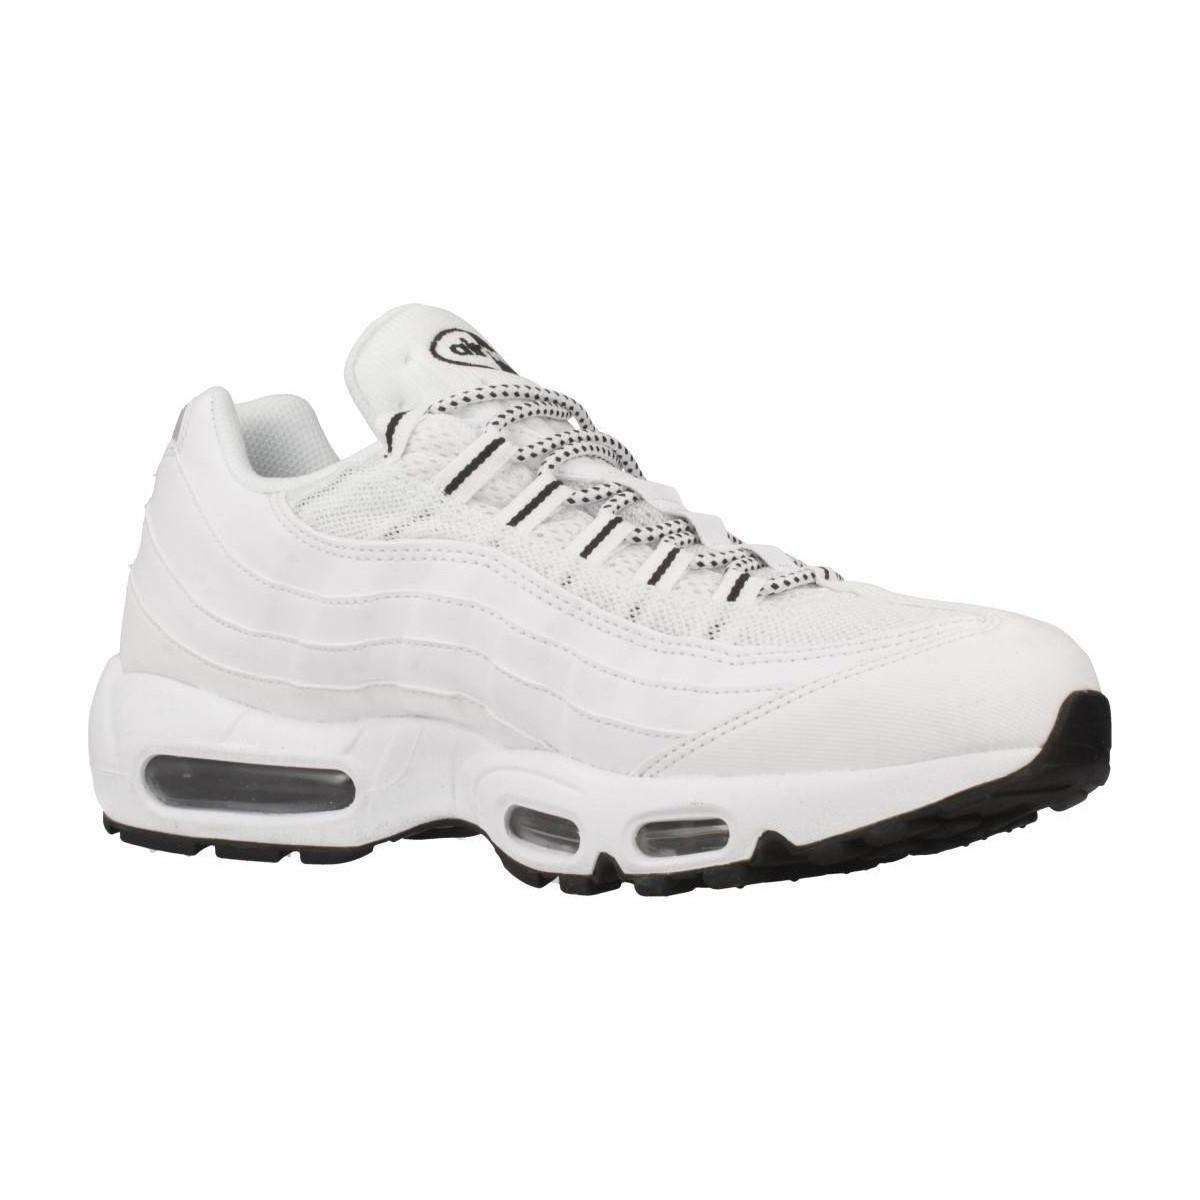 designer fashion 77a82 6d405 Nike Air Max 95 Men s Shoes (trainers) In White in White for Men - Lyst